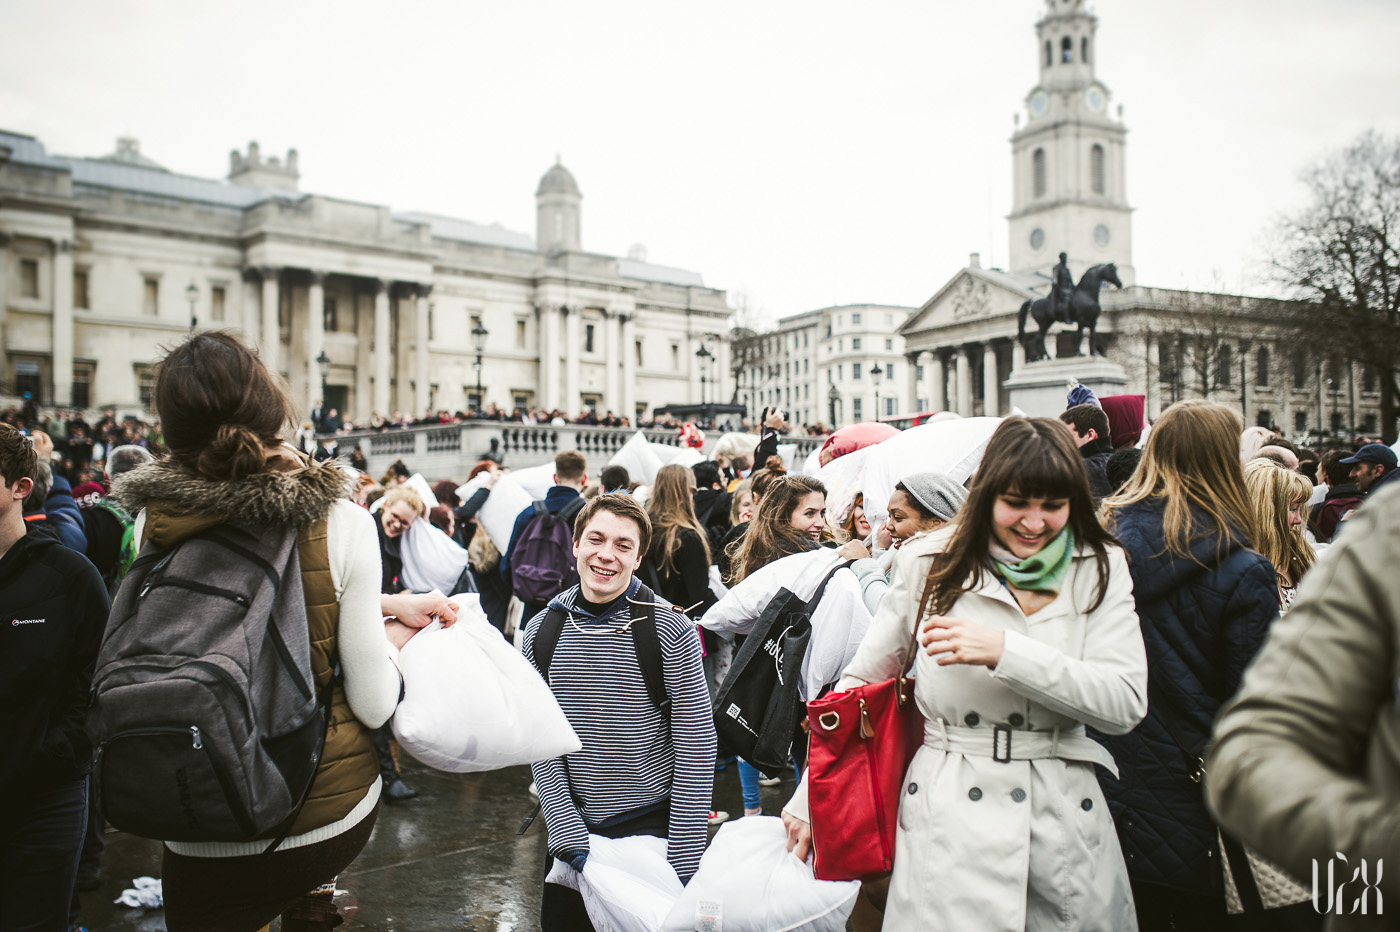 International Pillow Fight Day In London 2015 Street Photography Pagalviu Musis 06